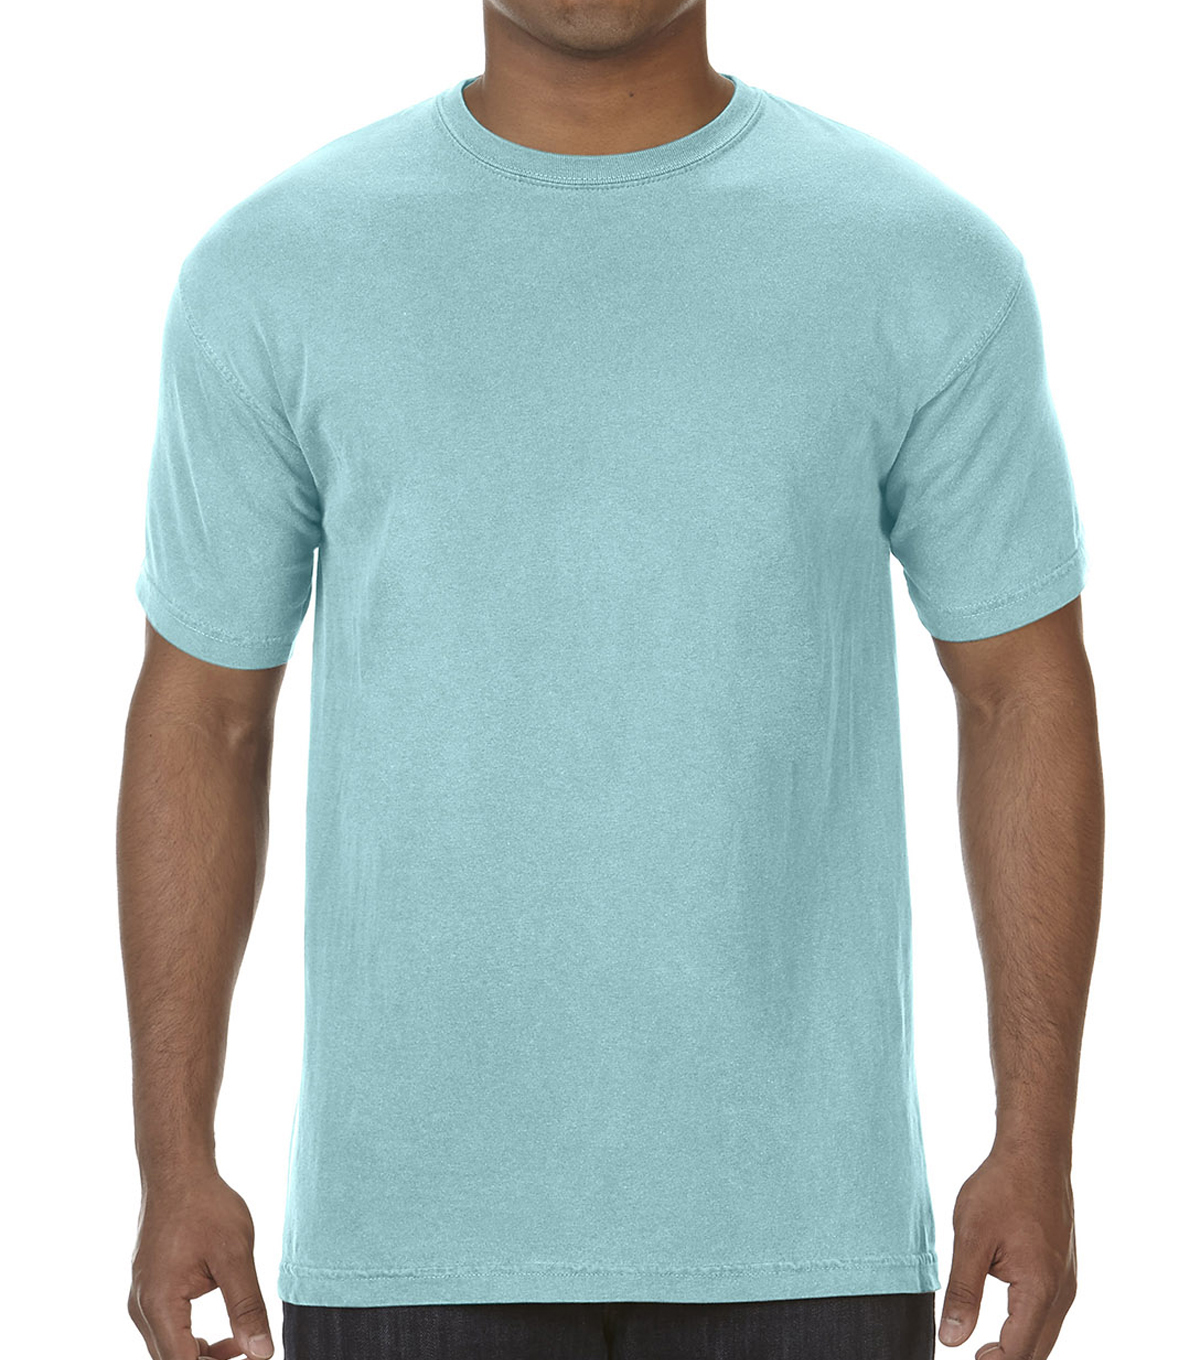 Adult Comfort Colors T-shirt-Medium